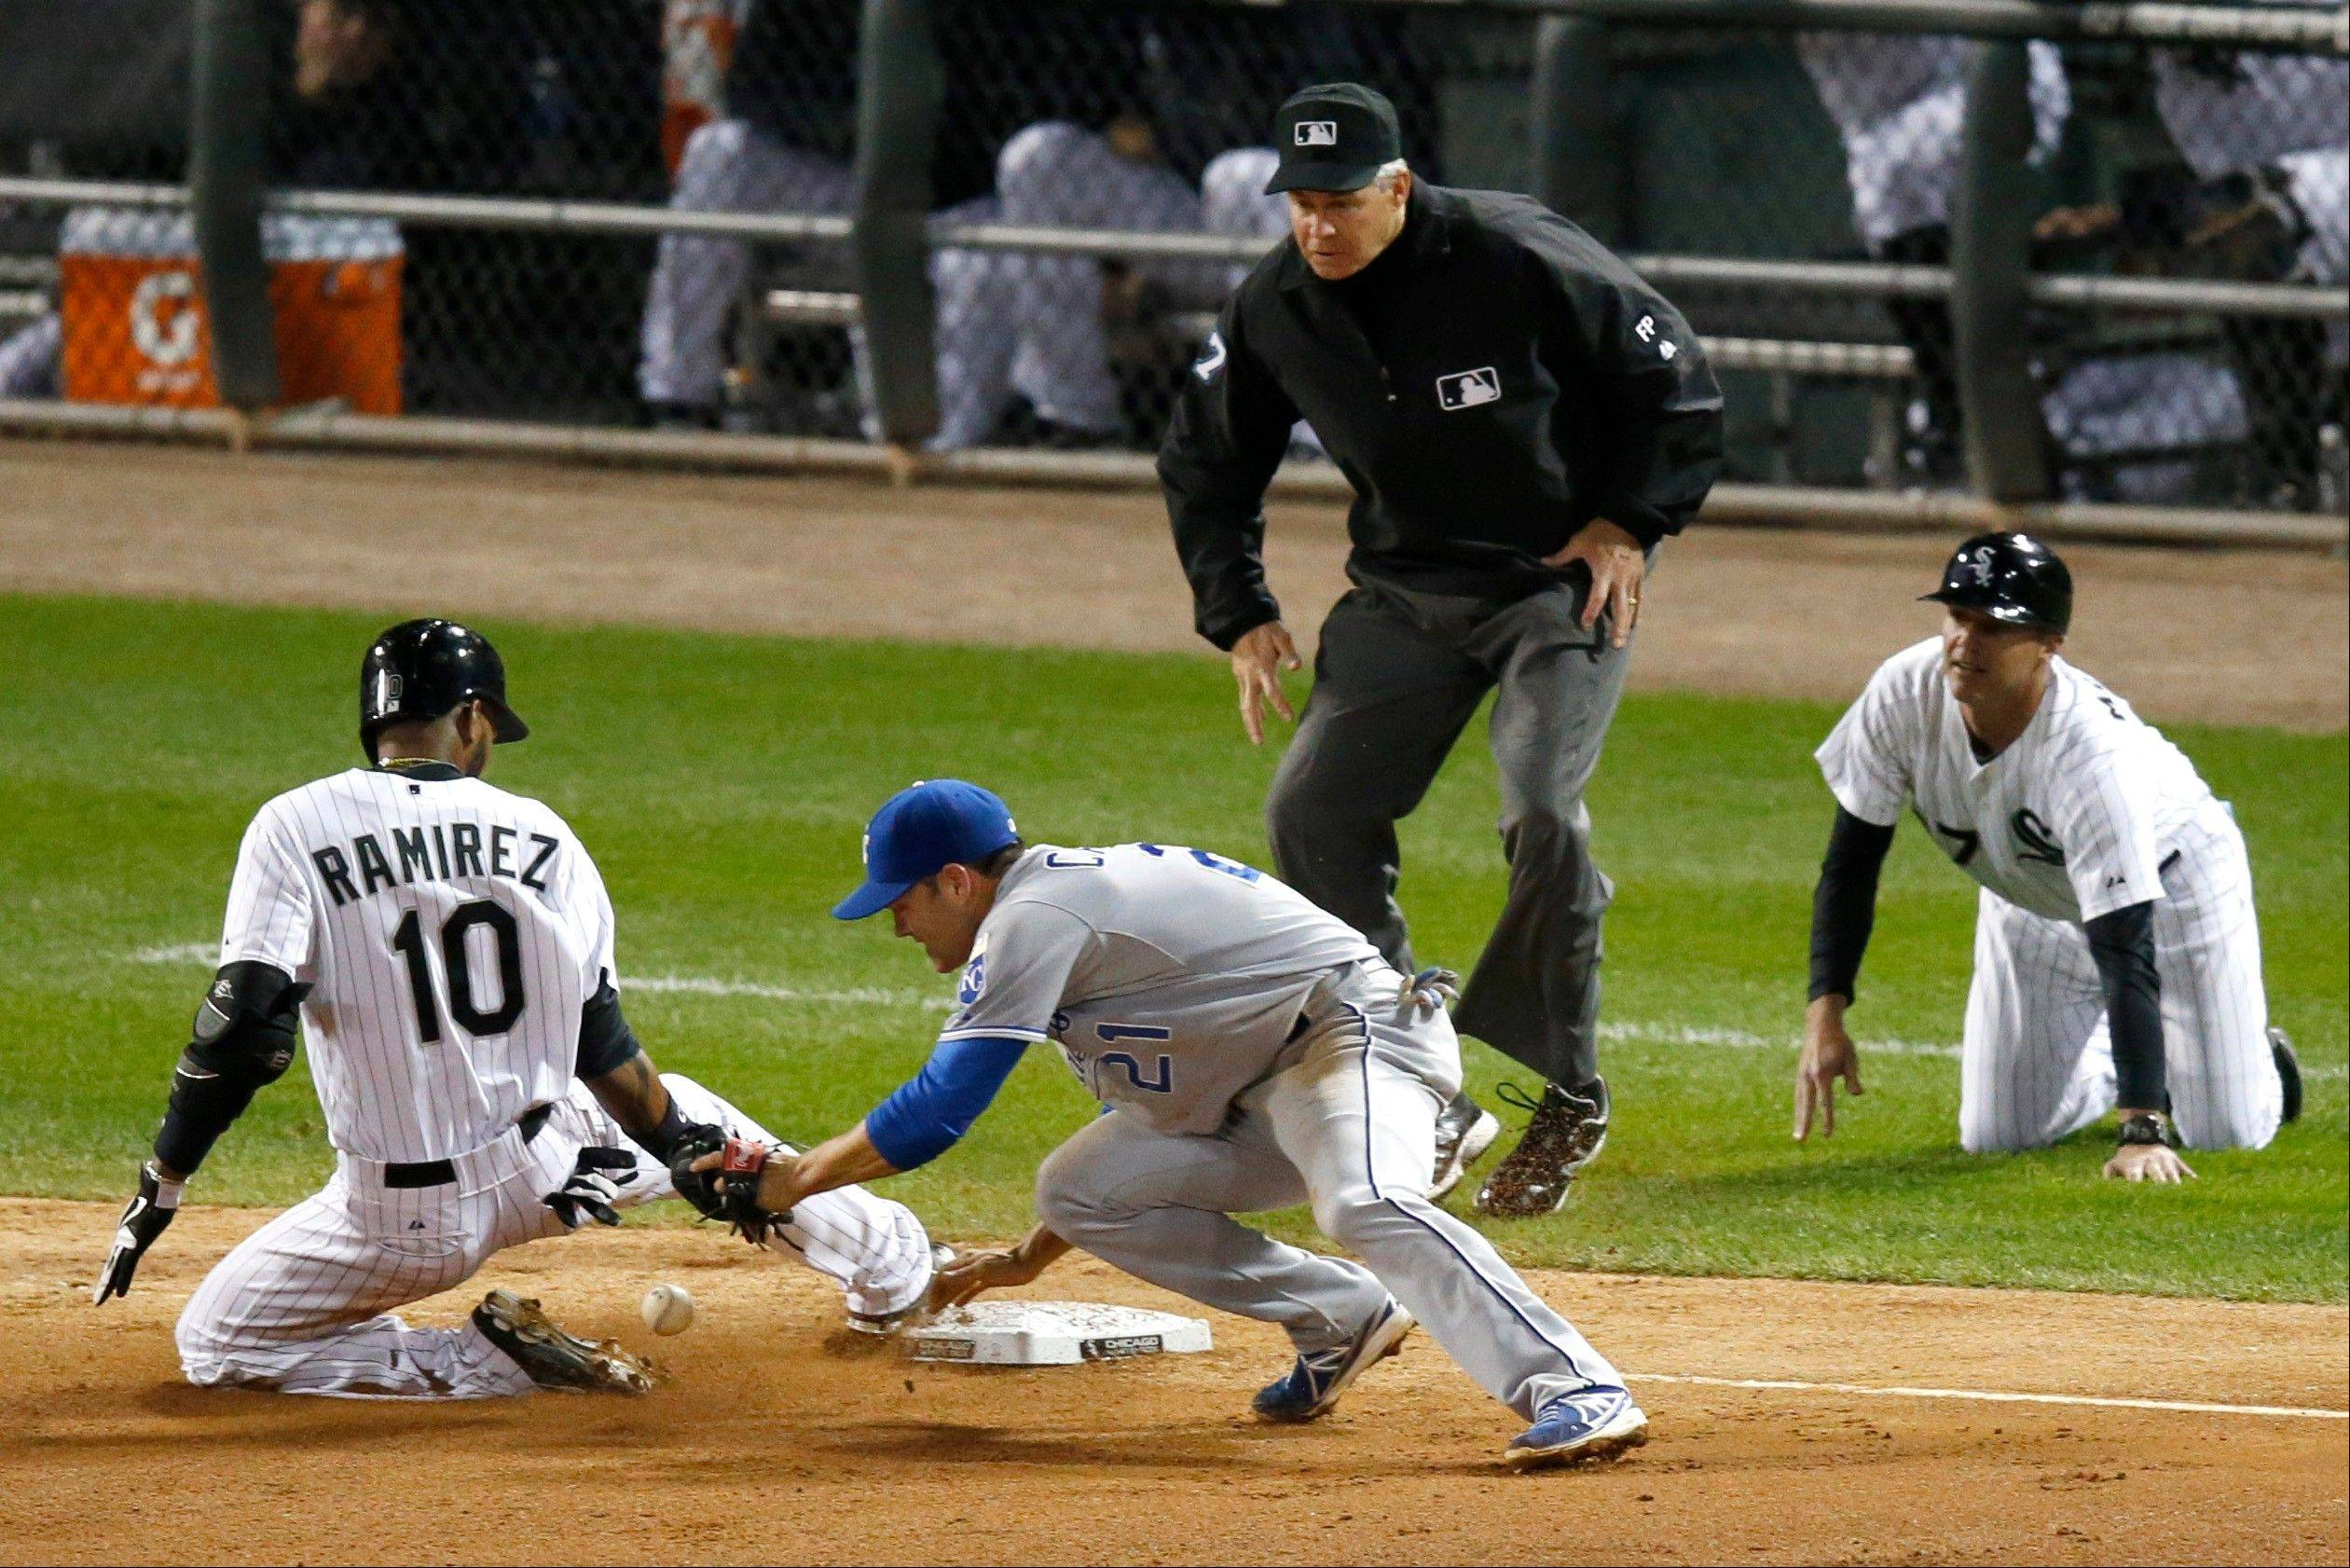 Shields leads Royals over White Sox 6-1